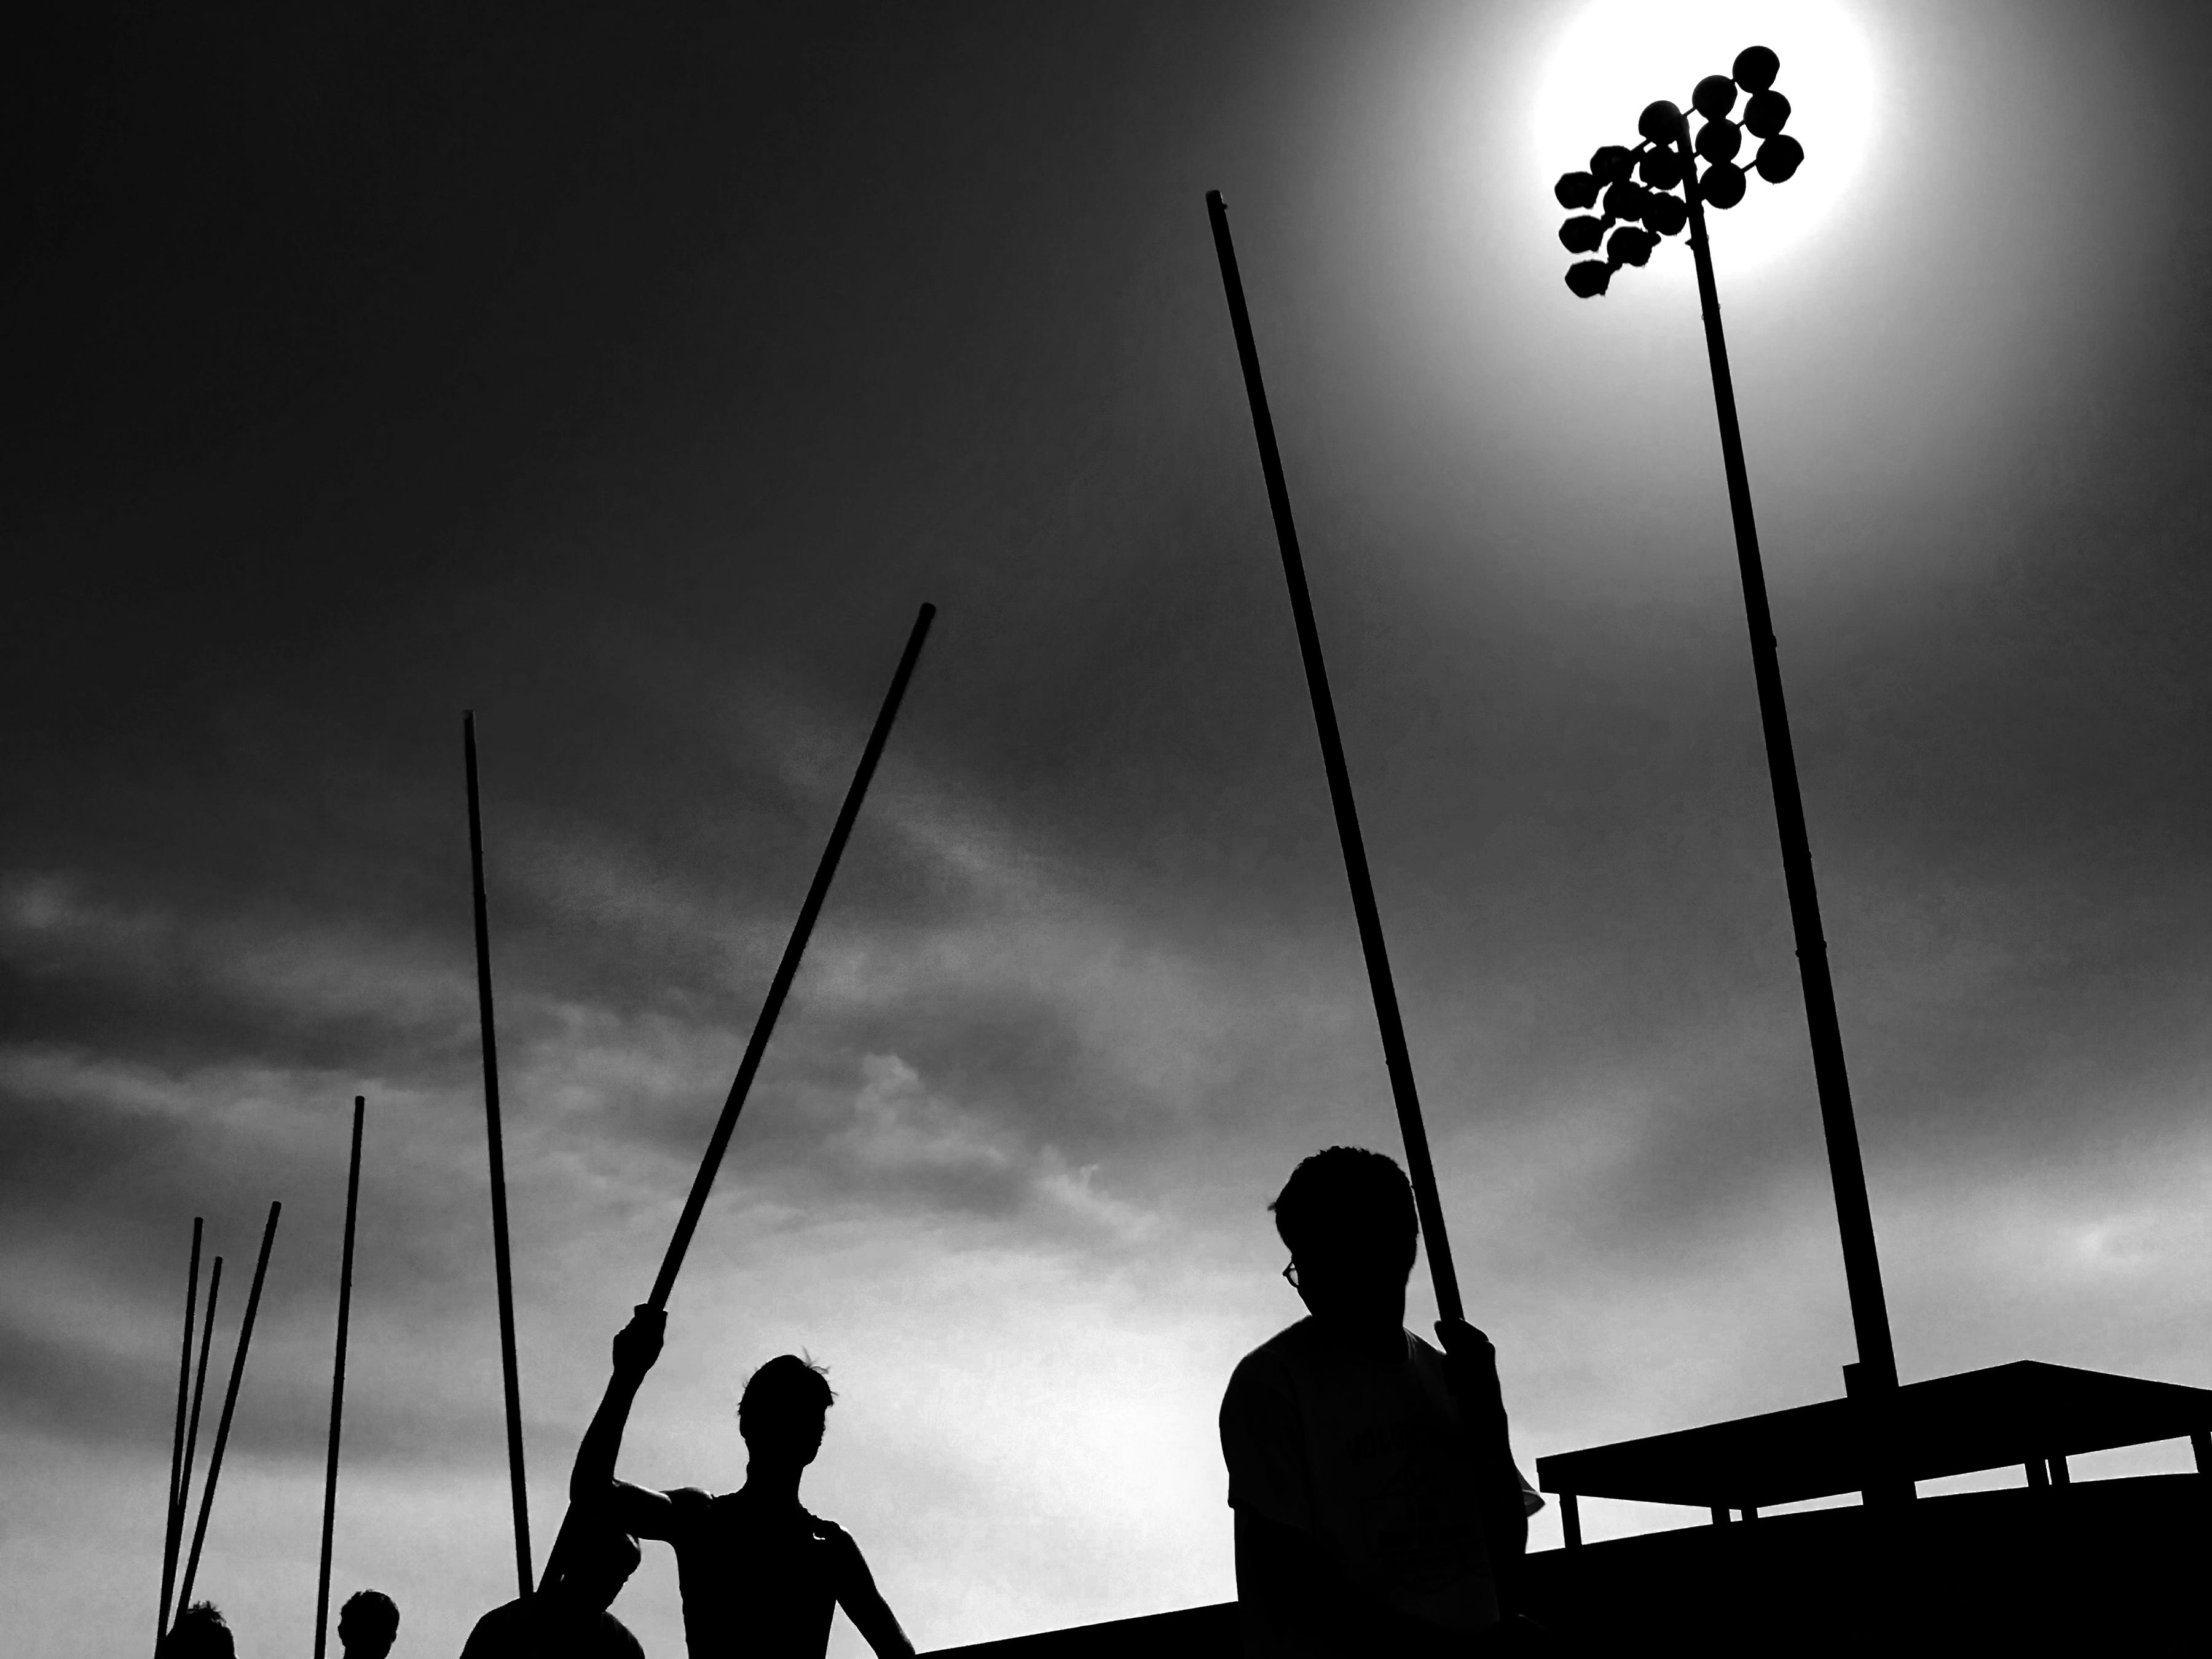 Pole vaulters warm up during the Runnin' Cadet Classic at Hilton High School.  As soon as I saw the pole vaulters against the sky it reminded me of a jousting tournament and horsemen waiting with their lances.